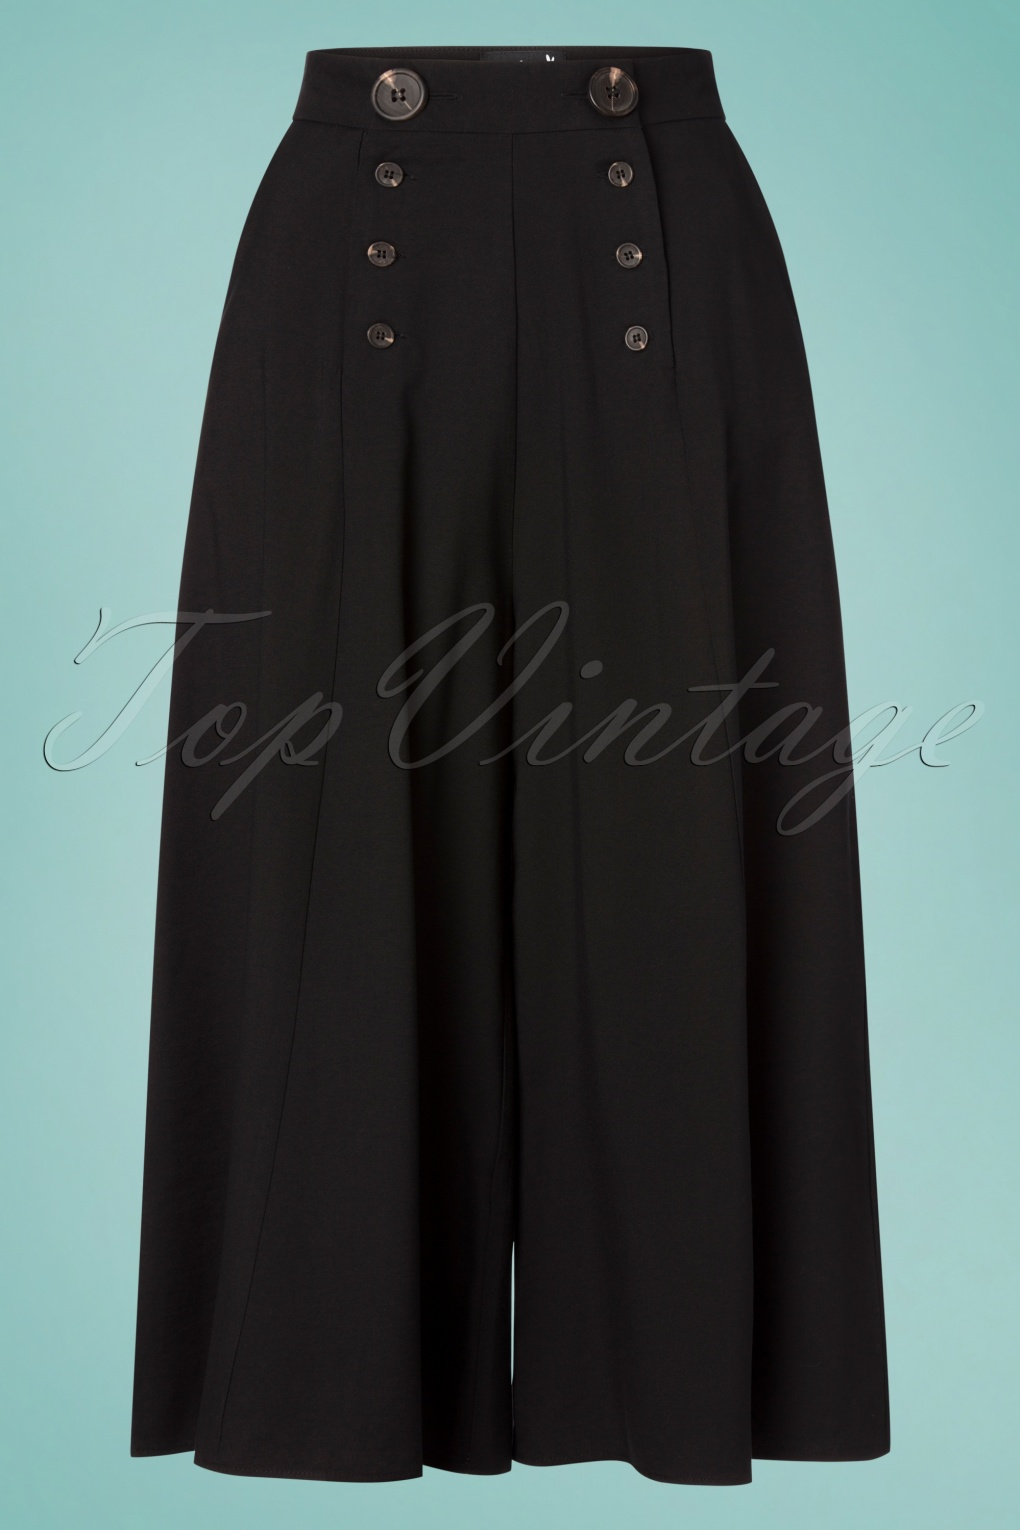 Vintage High Waisted Shorts, Sailor Shorts, Retro Shorts 30s Murphy Culottes in Black £53.37 AT vintagedancer.com